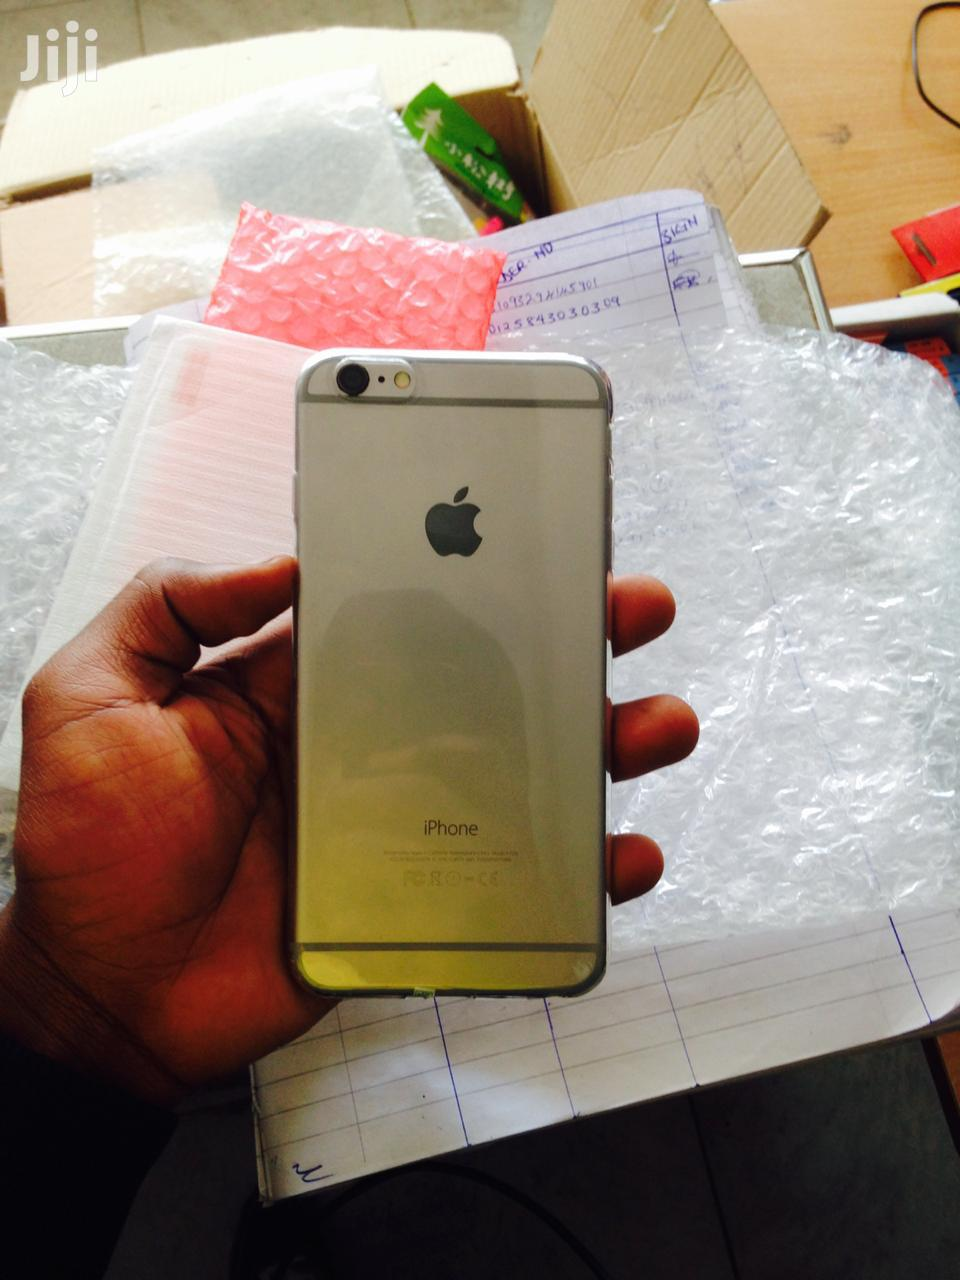 Archive: New Apple iPhone 6 Plus 16 GB Silver